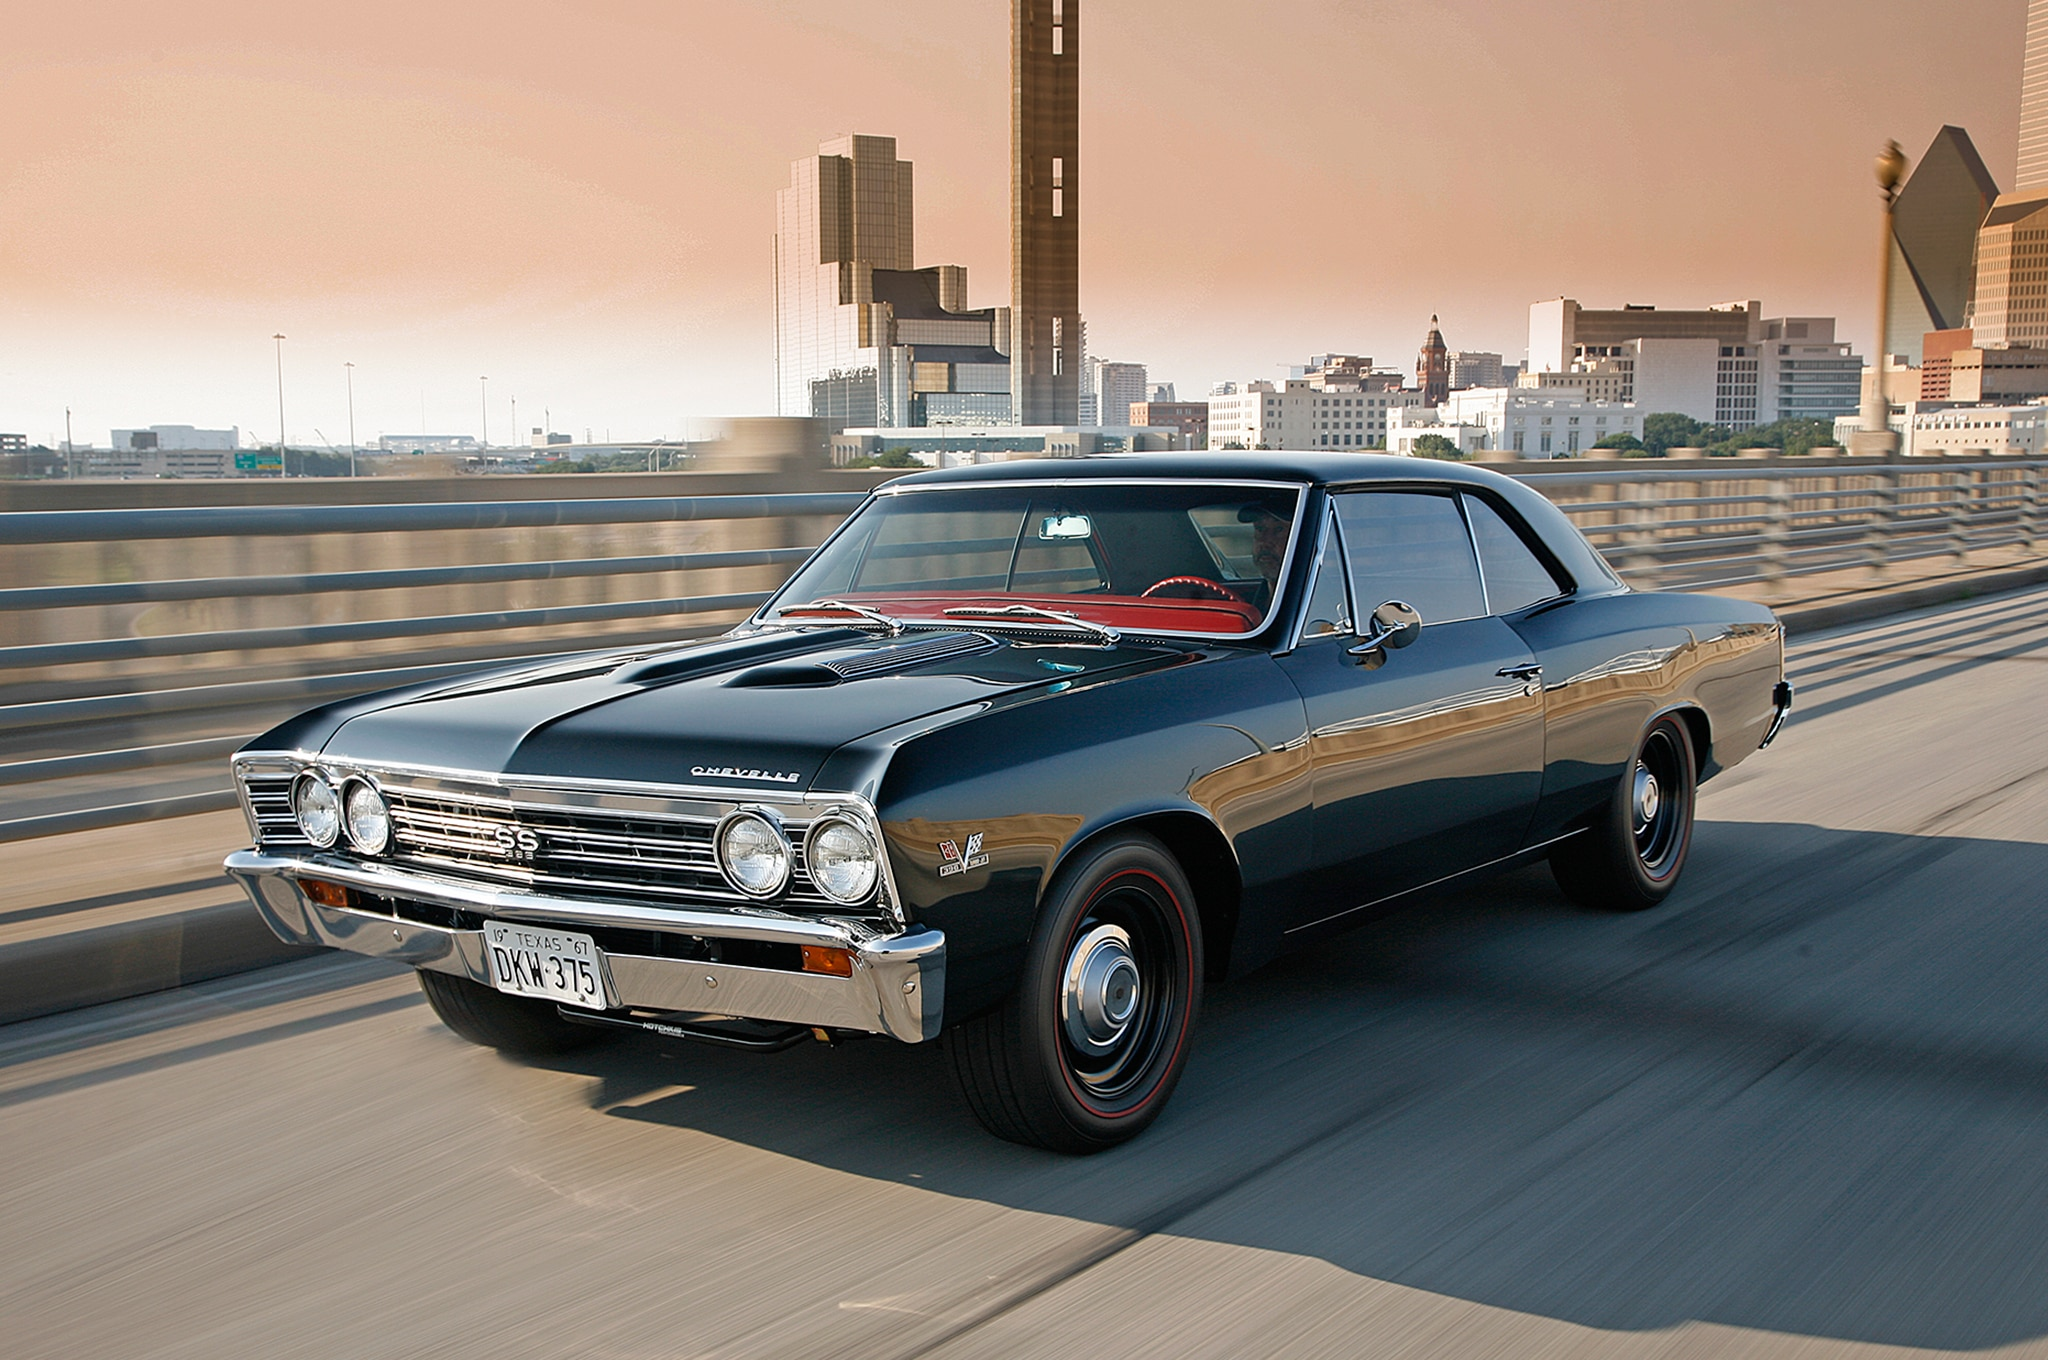 Here is an Amazing Sleeper-Style LS-Powered 1967 Chevelle